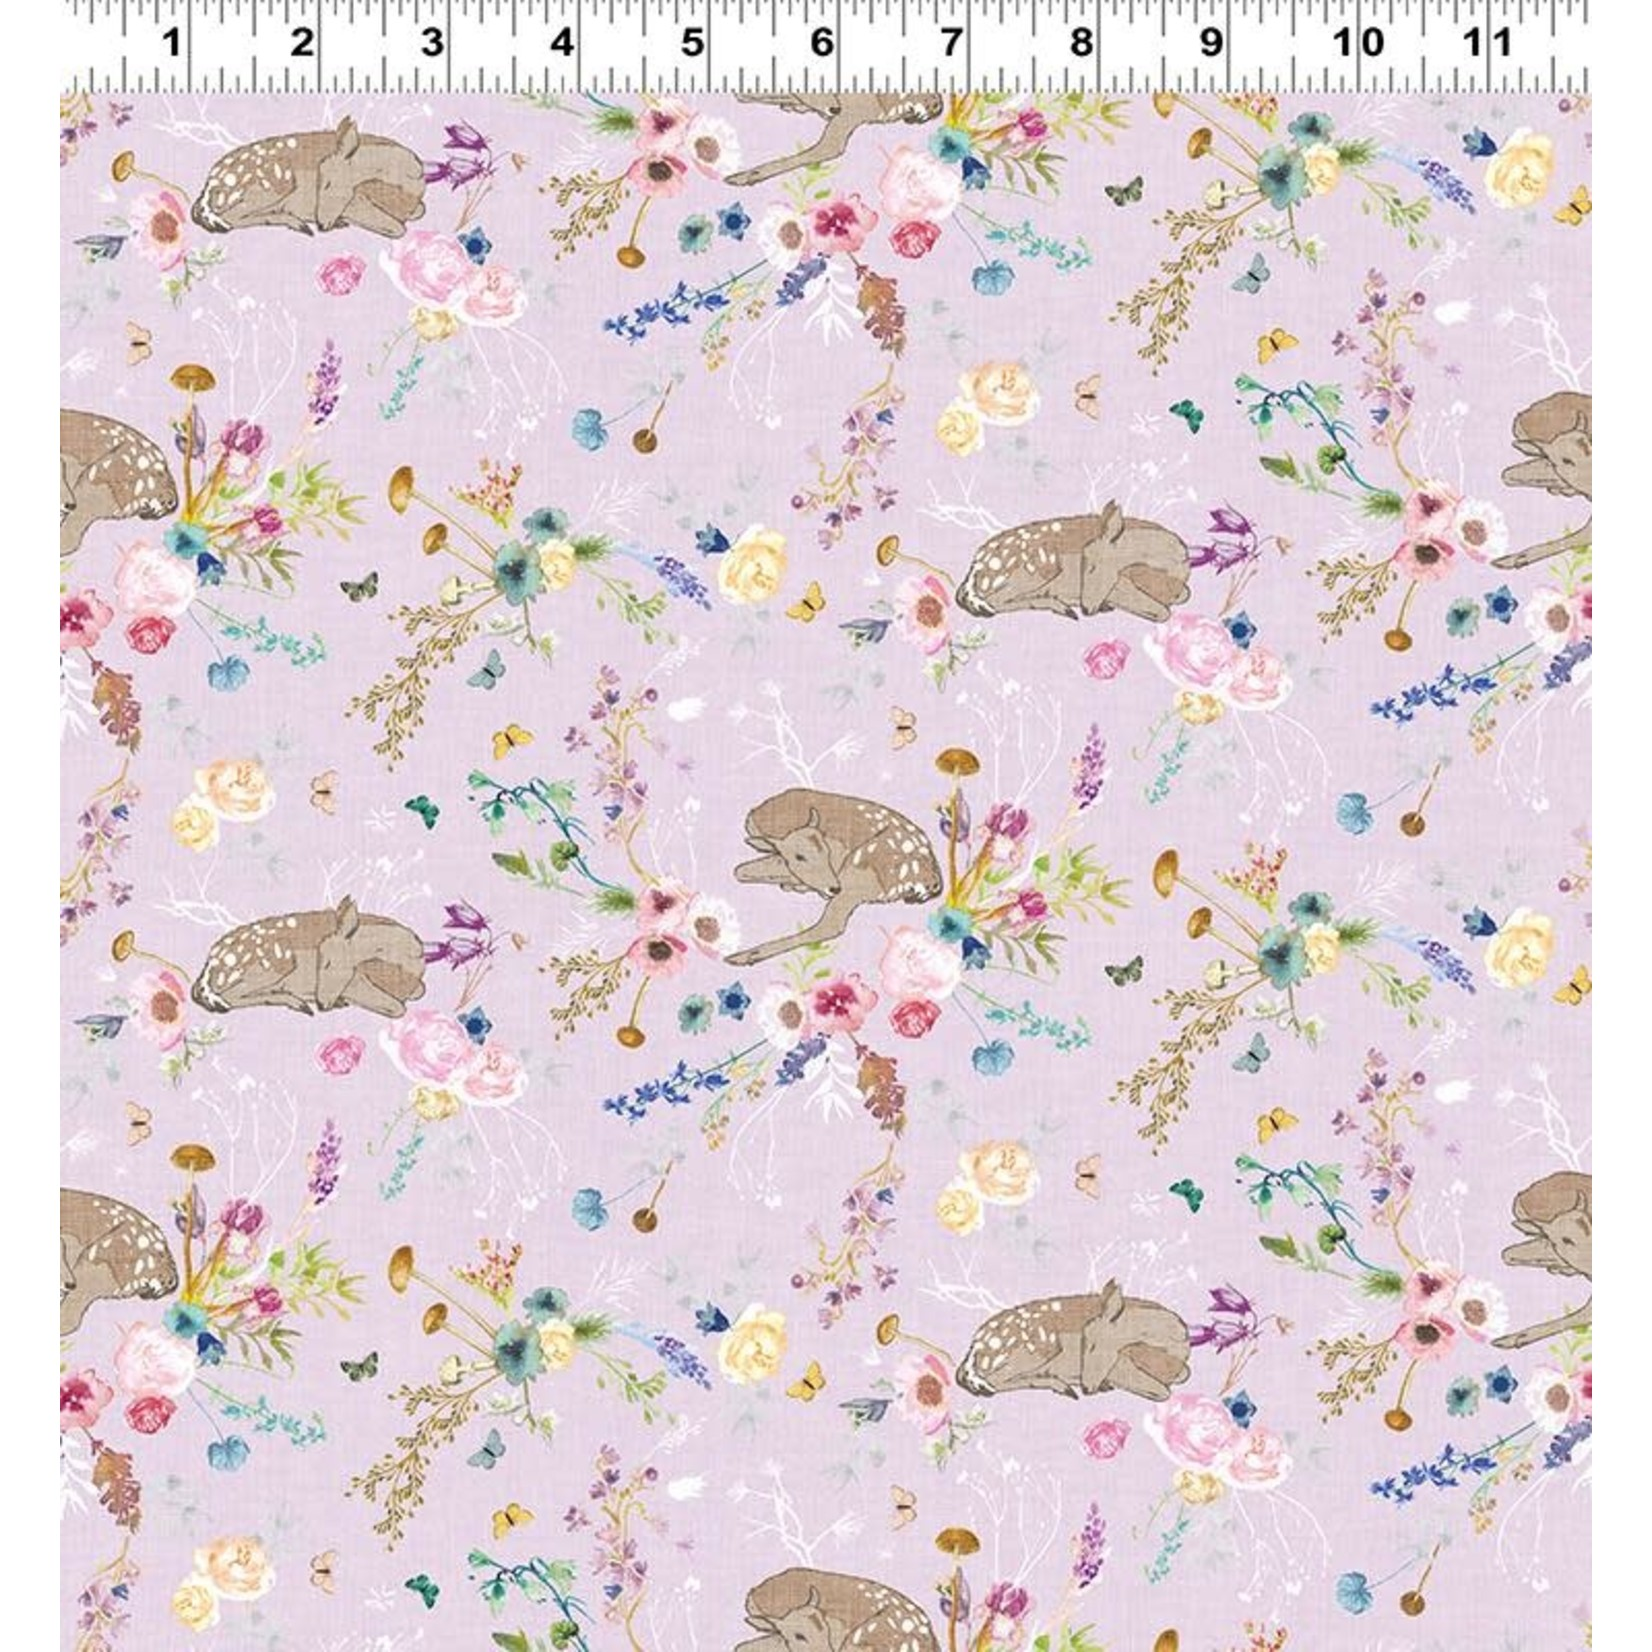 Esther Fallon Lau Forest Glade, Fawns, Orchid Y3155-121 $0.20 or $20m